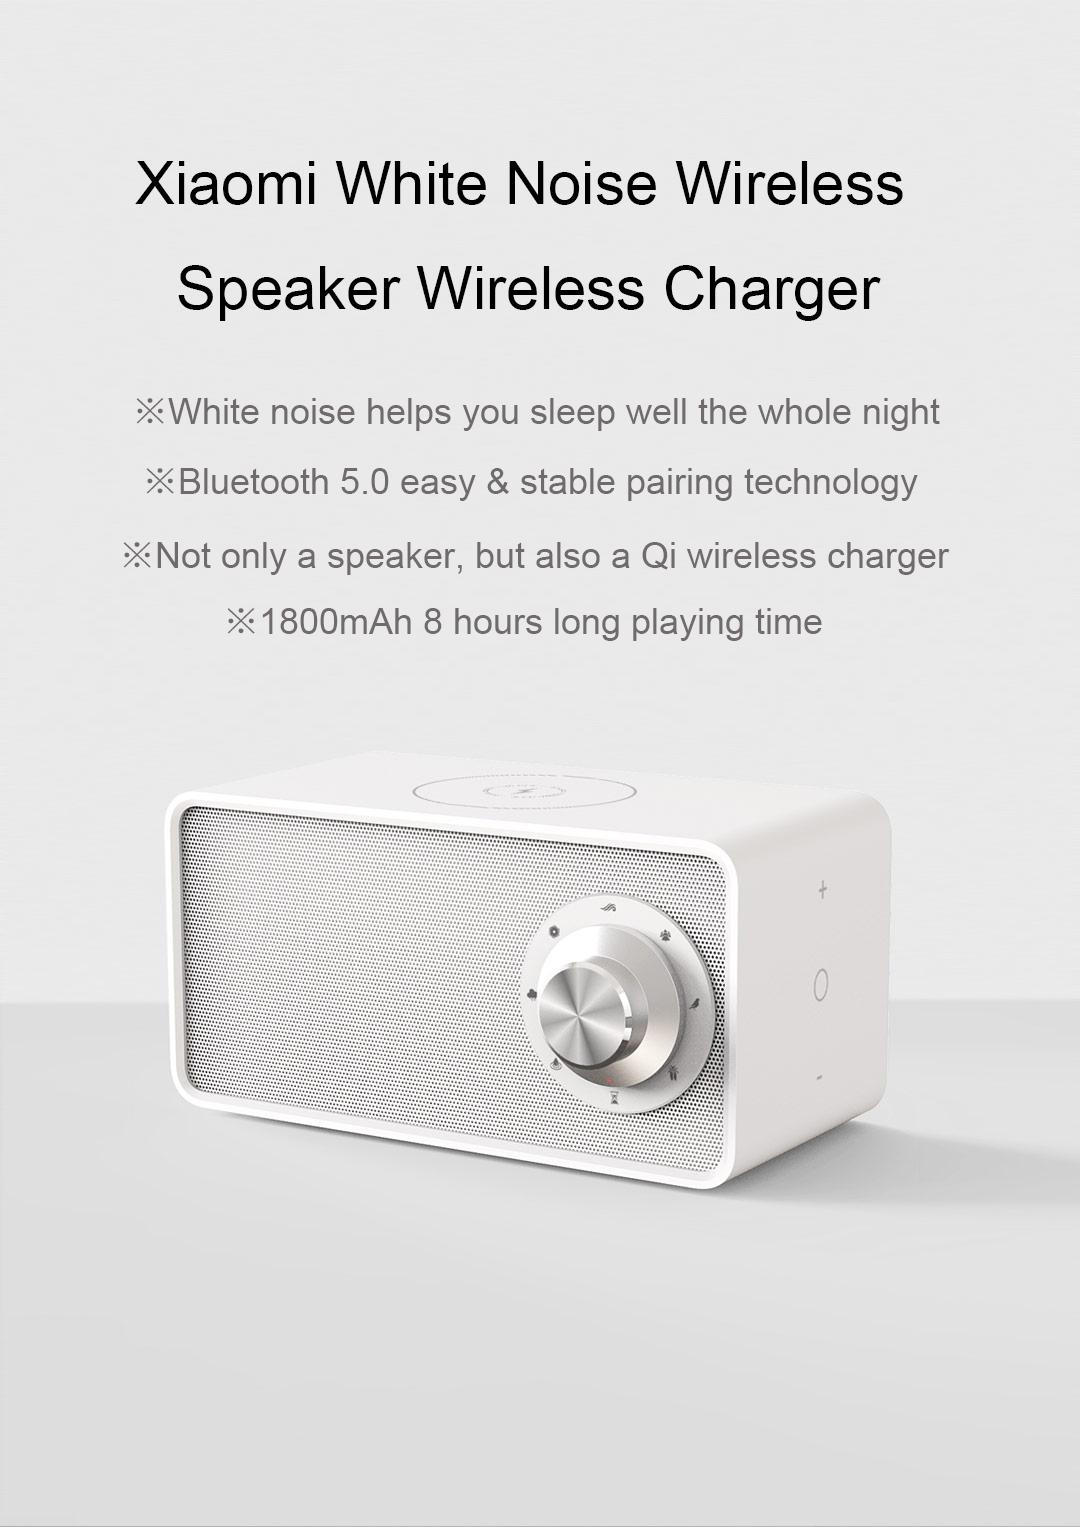 df542ab25258 - Coupon code for New Xiaomi Qualitell Wireless Charger White Noise Speaker BLT5.0 EPP  Protocol 10W Fast Charging Help Sleep Speaker